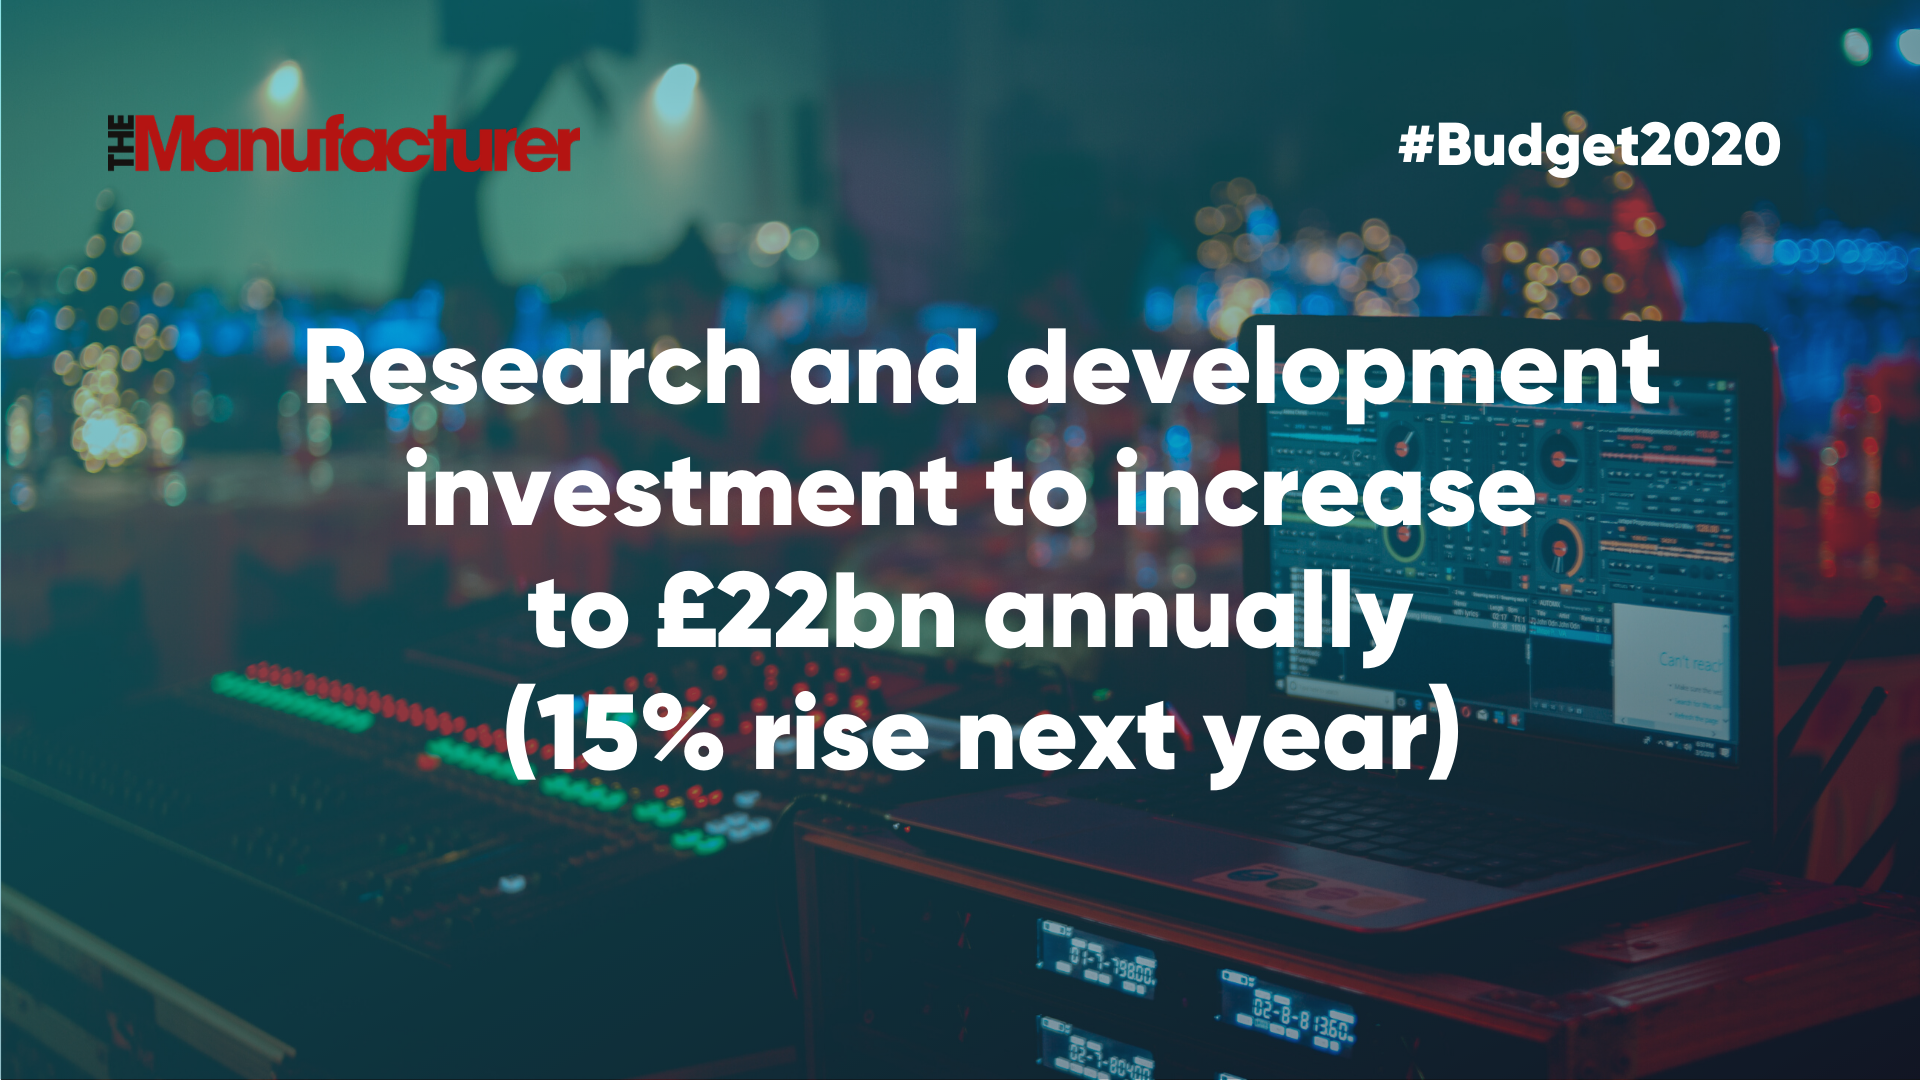 Budget 2020 - R&D Investment